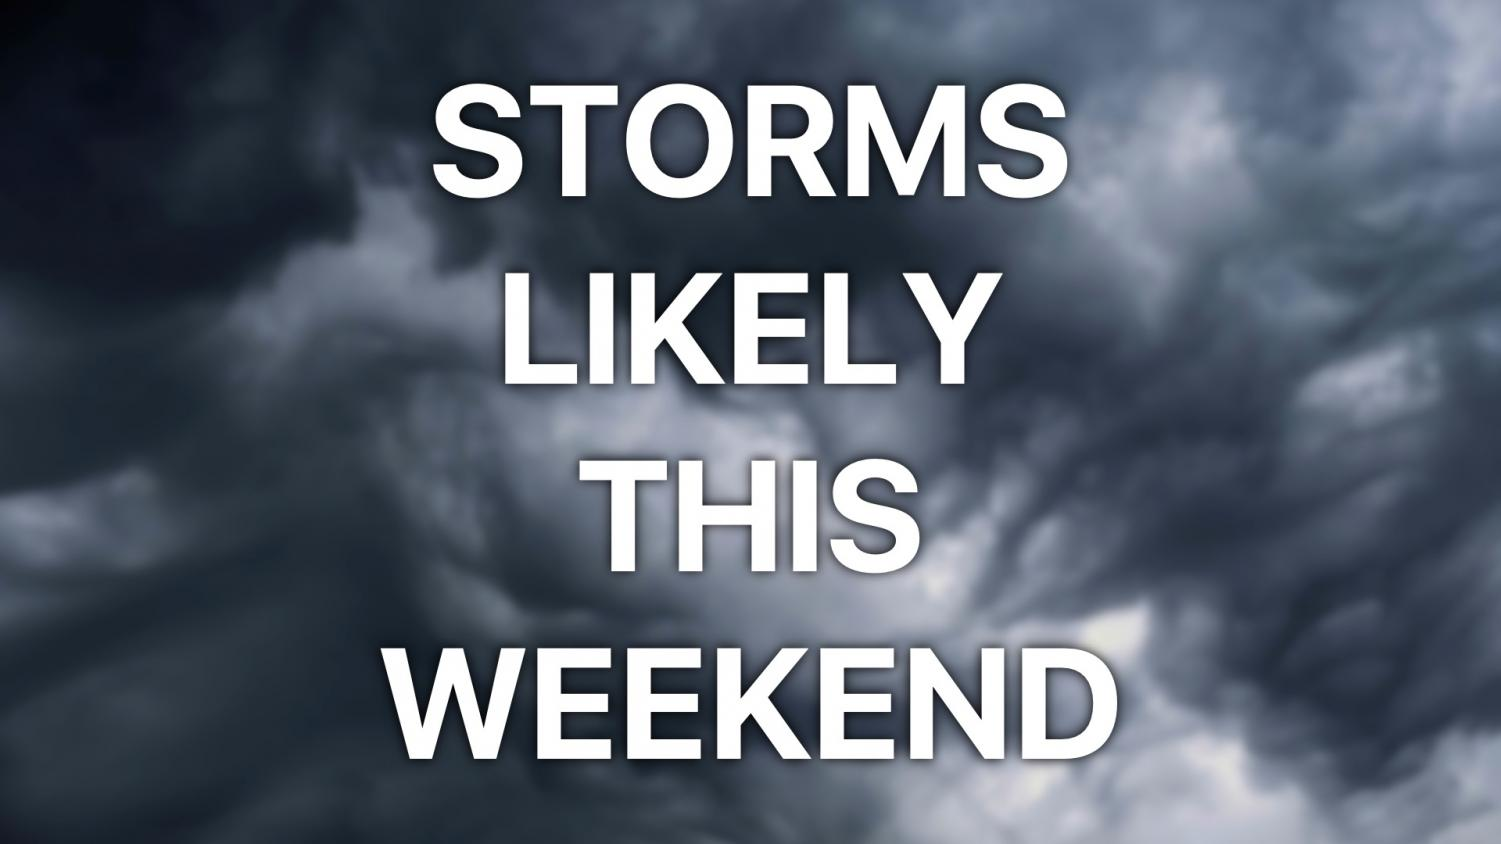 Storms likely this weekend